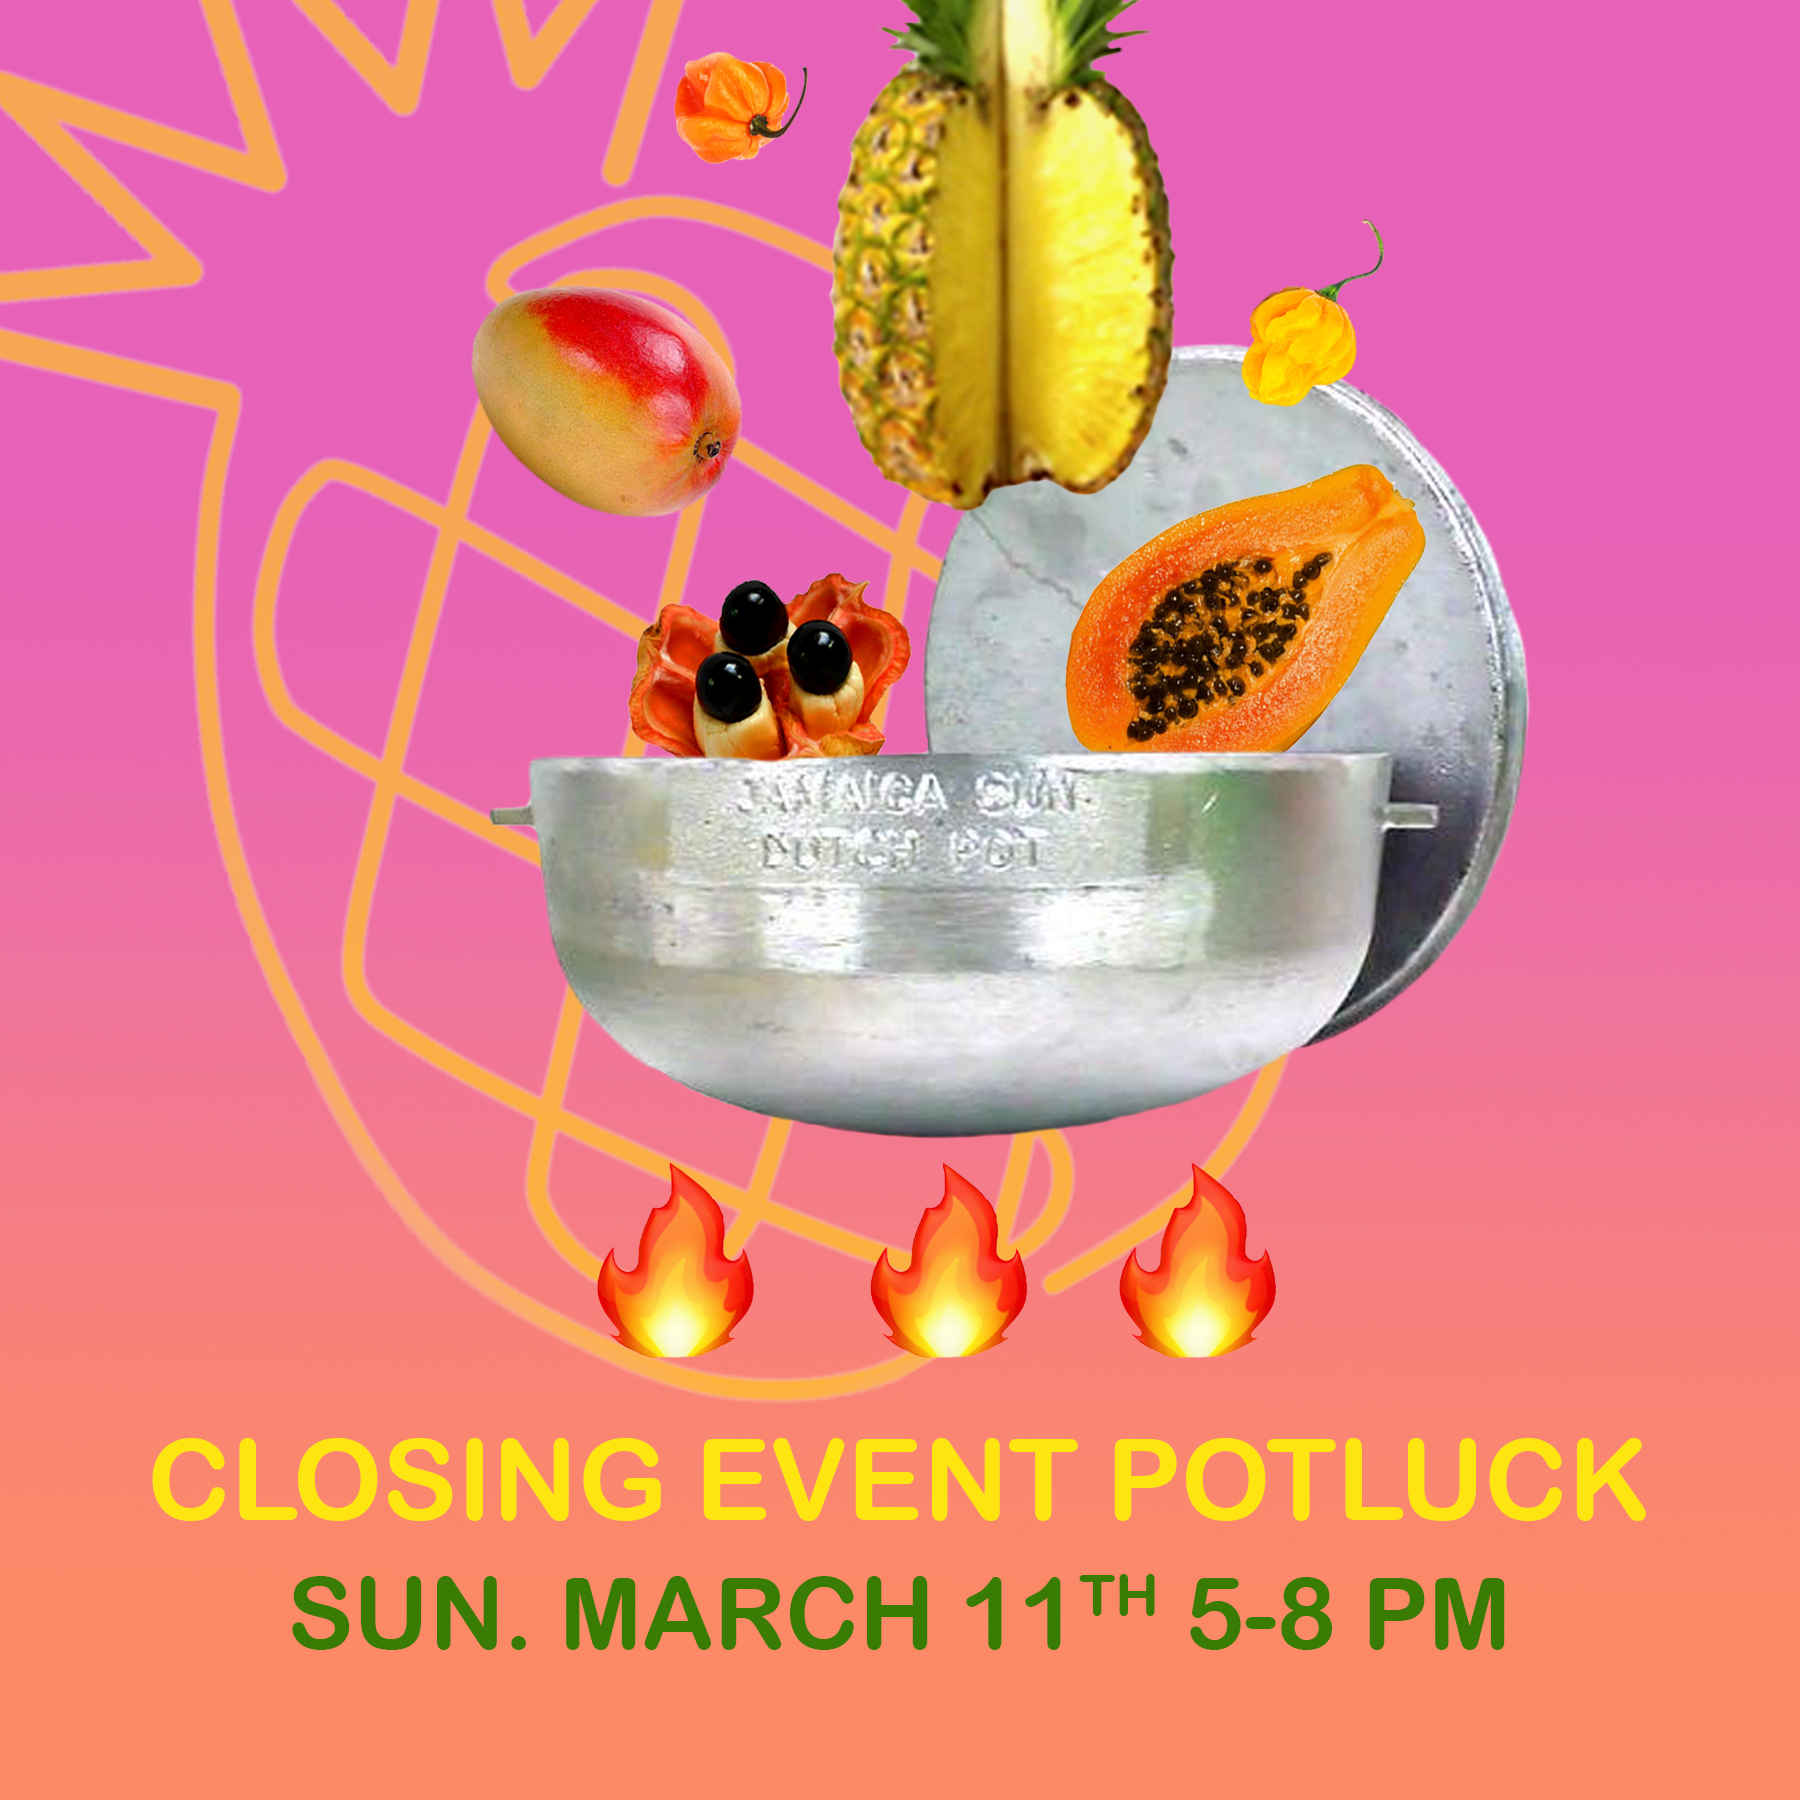 """PARADICE PALASE invites you to join us for the closing reception of """"It Just Sort of Happens One Day"""".  Featuring work from Nick Alciati, Tiffany Smith, David Nelson Art, Valery Jung Estabrook, Estefania Velez, and Eleni Zaharopoulos.  Sign up to bring a dish  HERE   5 - 8 PM Potluck hosted by Tiffany Smith Theme: foods that remind you of """"home"""" Dinner: 5:00-6:30pm, self serve 6:30-8:00pm"""